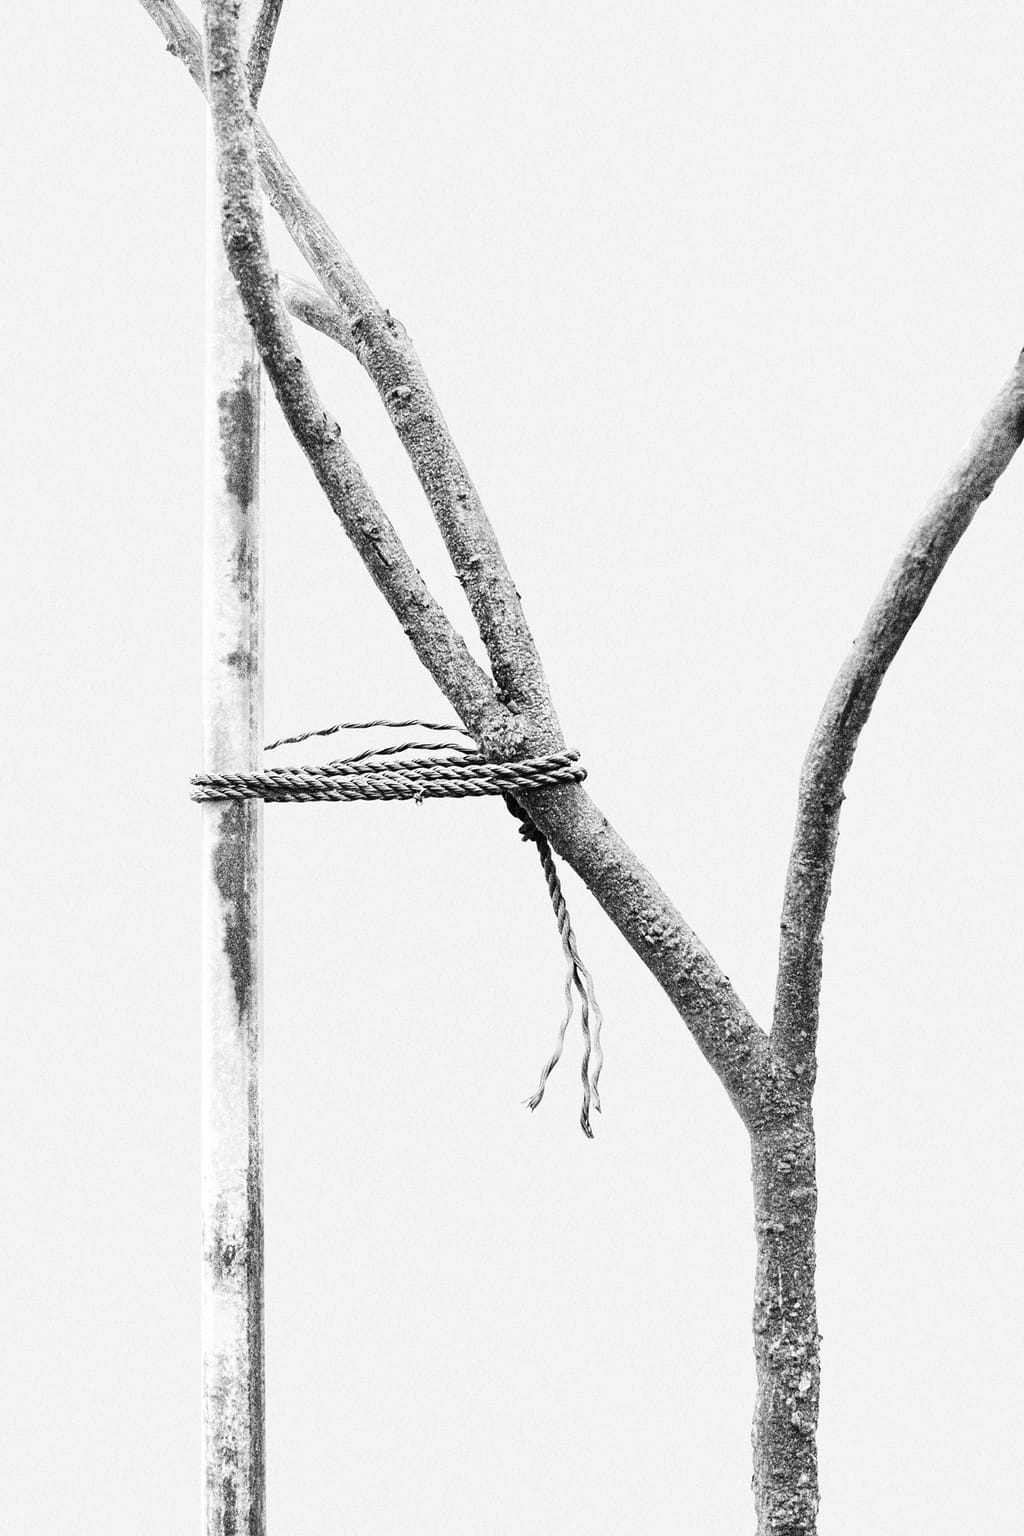 Black and white photo of a tree tied to a wooden branch, supporting it; against a white background.